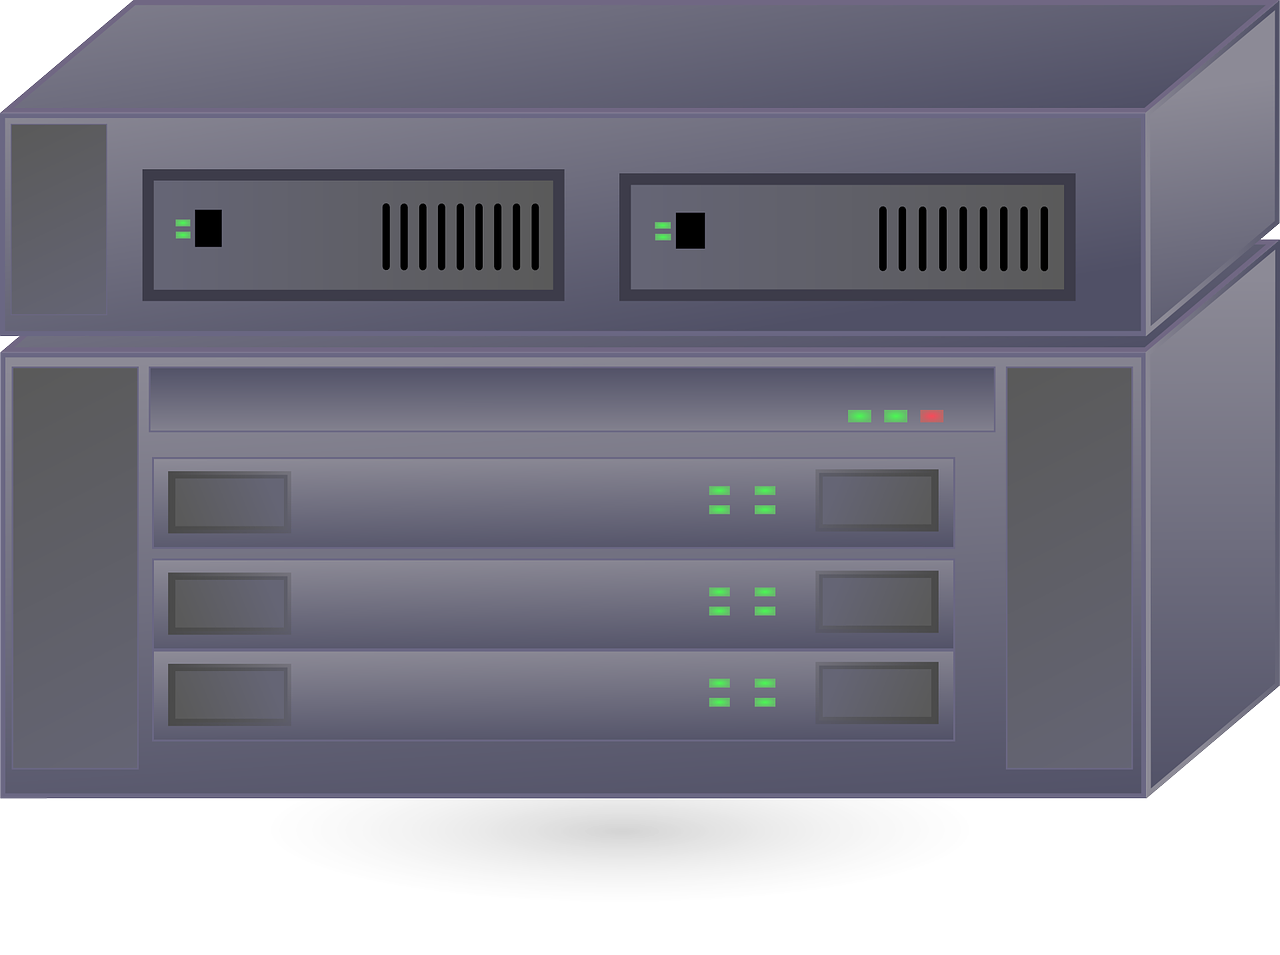 Pabx clipart png transparent stock A Brief Discussion on Network Rack Types - Optical Sockets png transparent stock